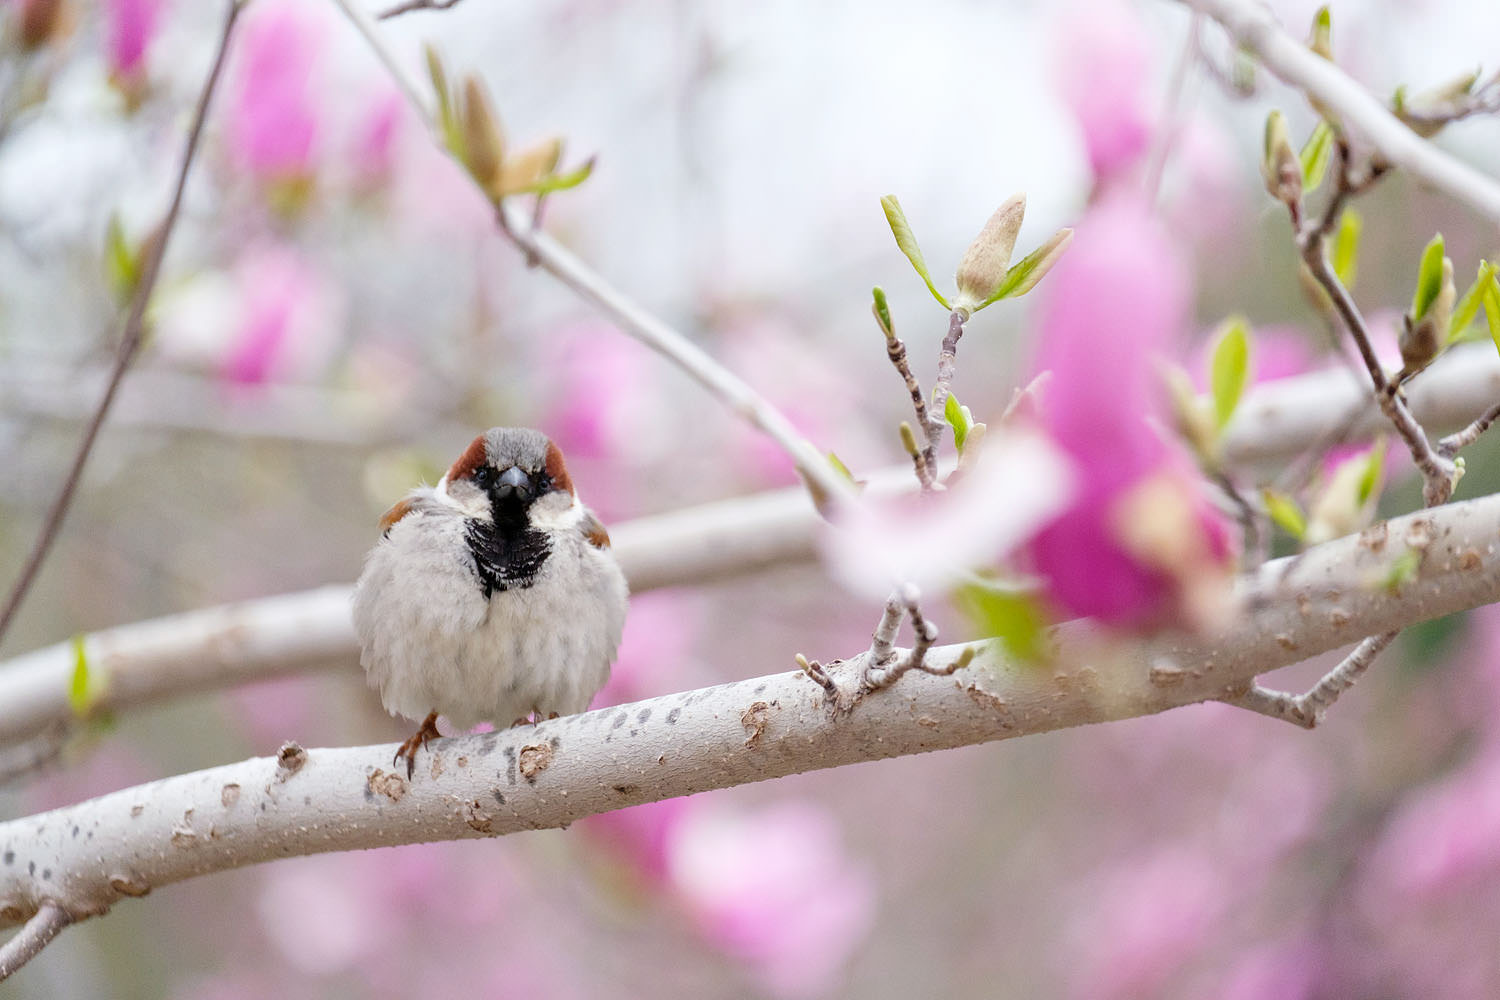 A bird in a blossoming magnolia tree in DC